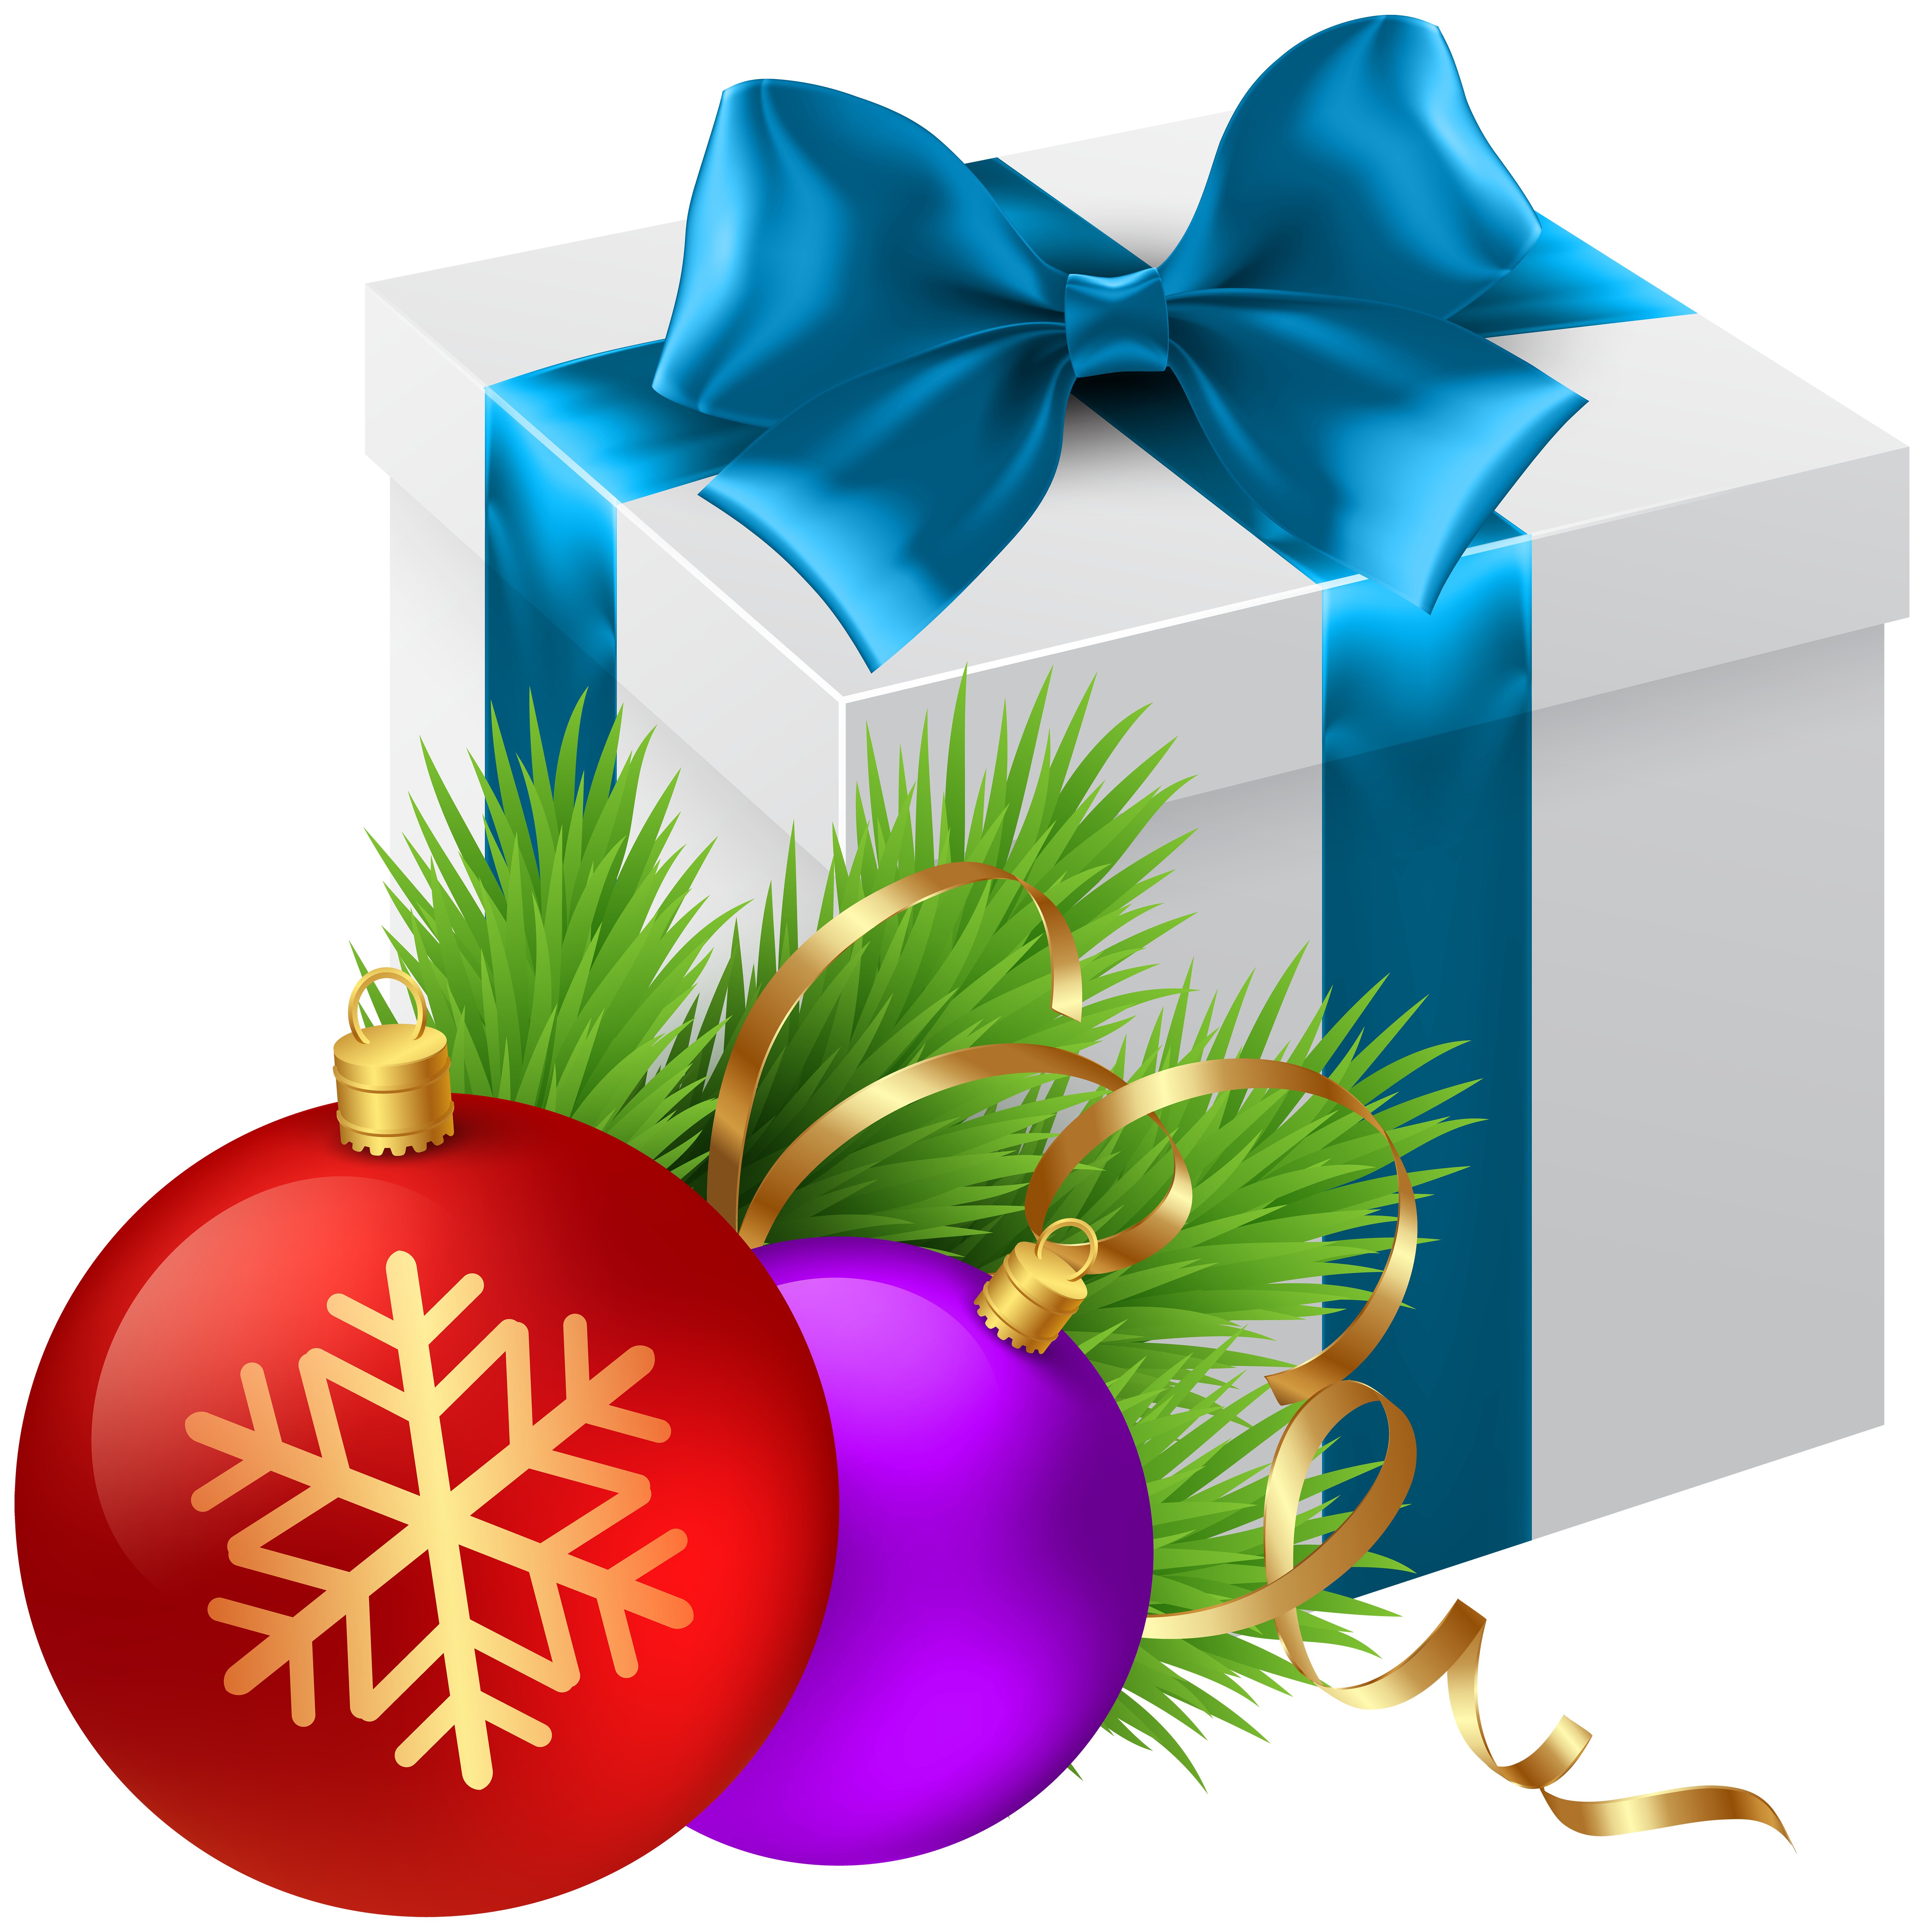 Gift clipart clip art. Christmas transparent png image